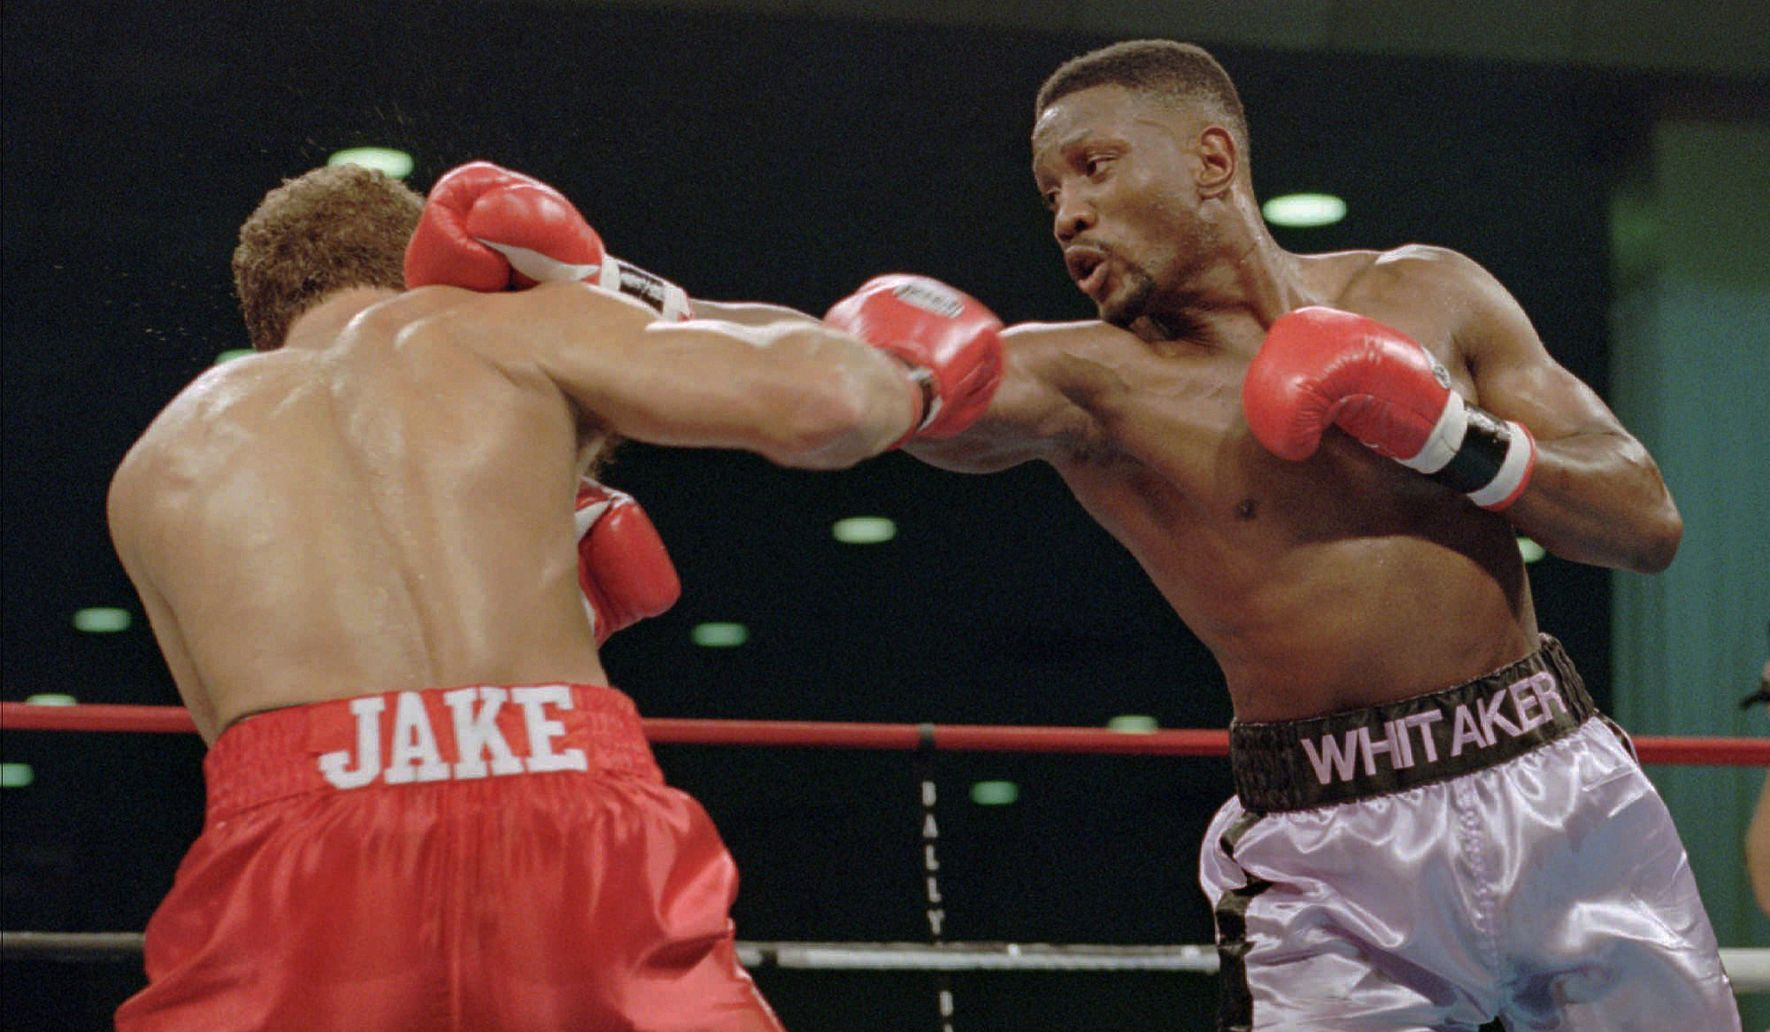 Pernell Whitaker was a musician in the boxing ring with a style never